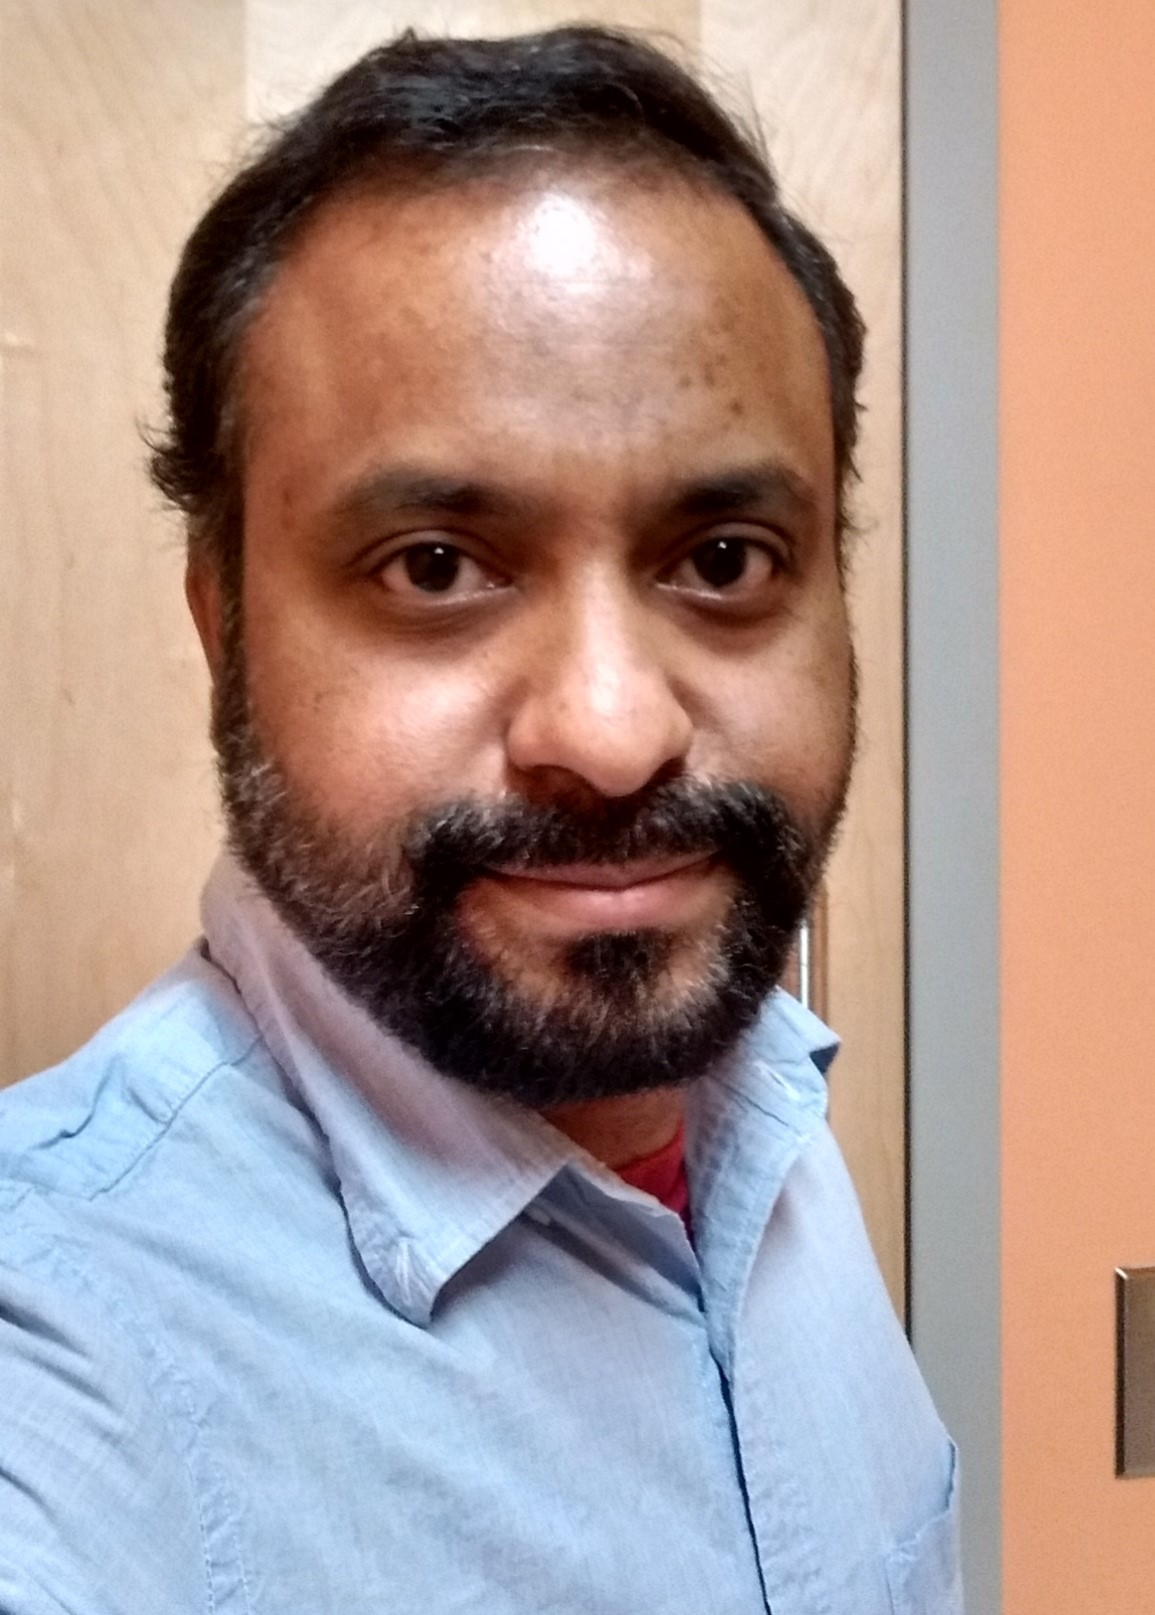 Congratulations to Dr. Sundaram Pakkiriswami, a postdoctoral fellow in the Pulinilkunnil laboratory, for securing a two-year fellowship from NBHRF valued at $80,000!